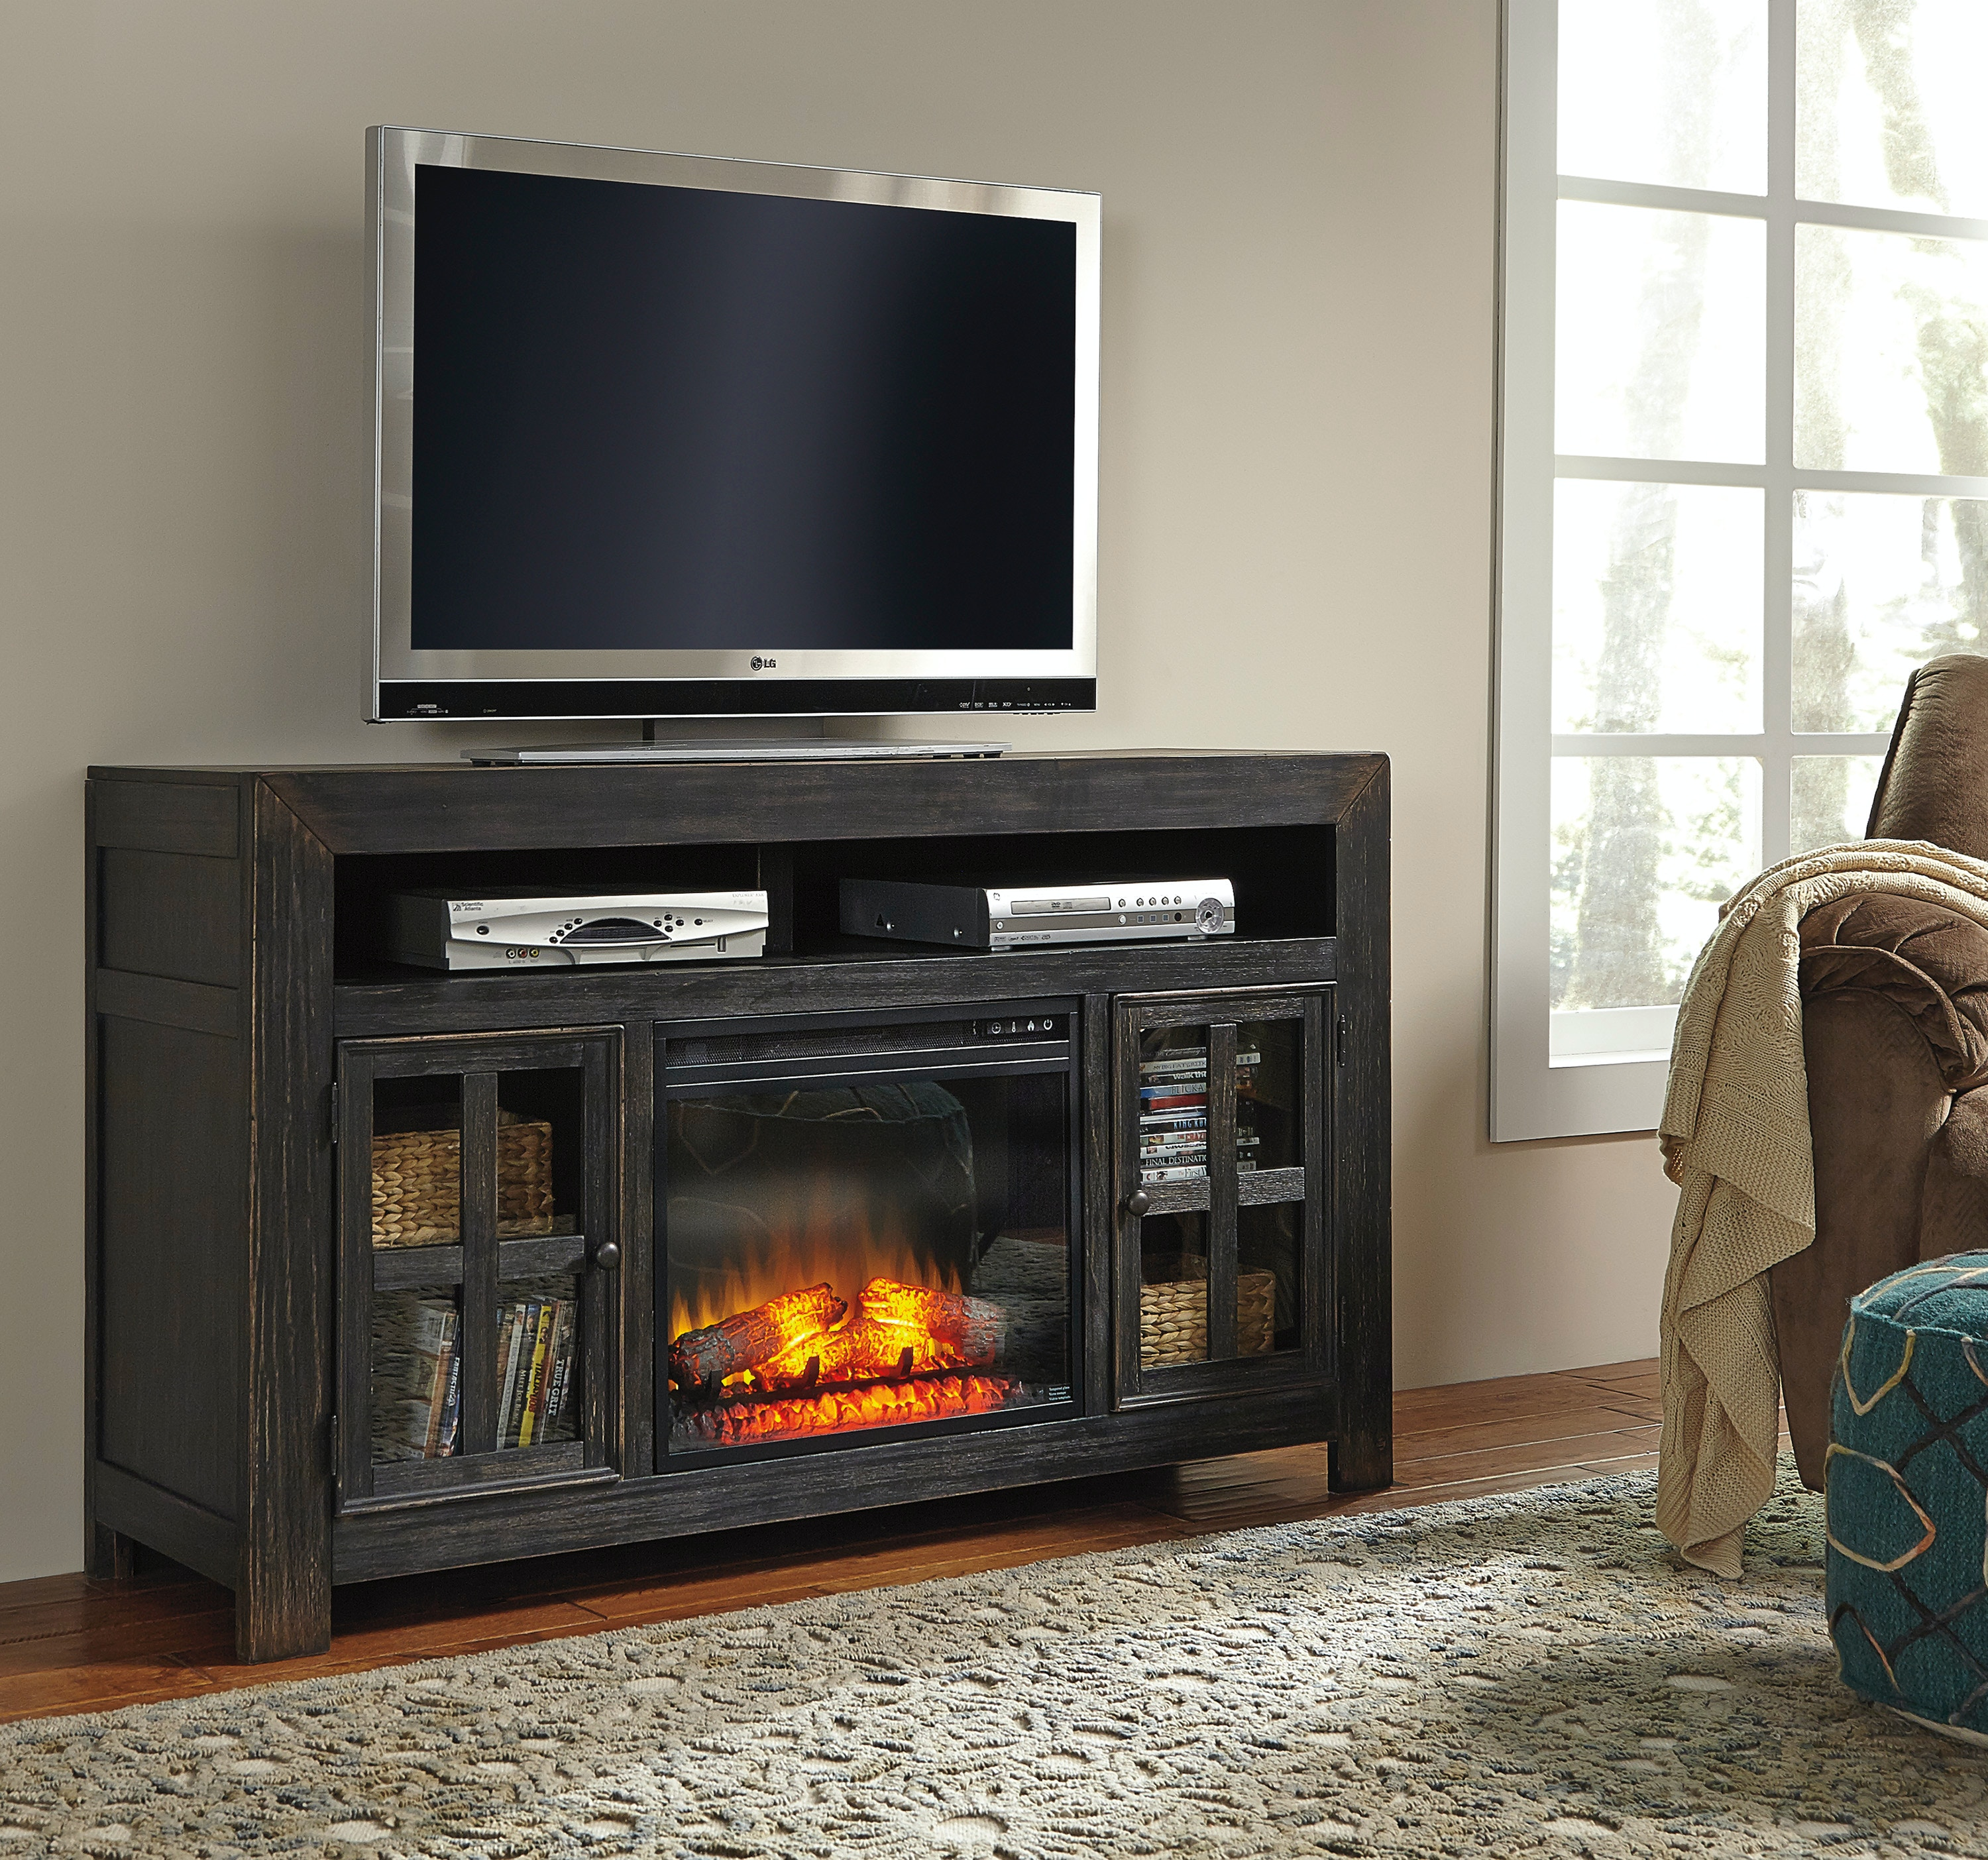 Signature Design By Ashley Tv Stand W Fireplace Insert On Sale At